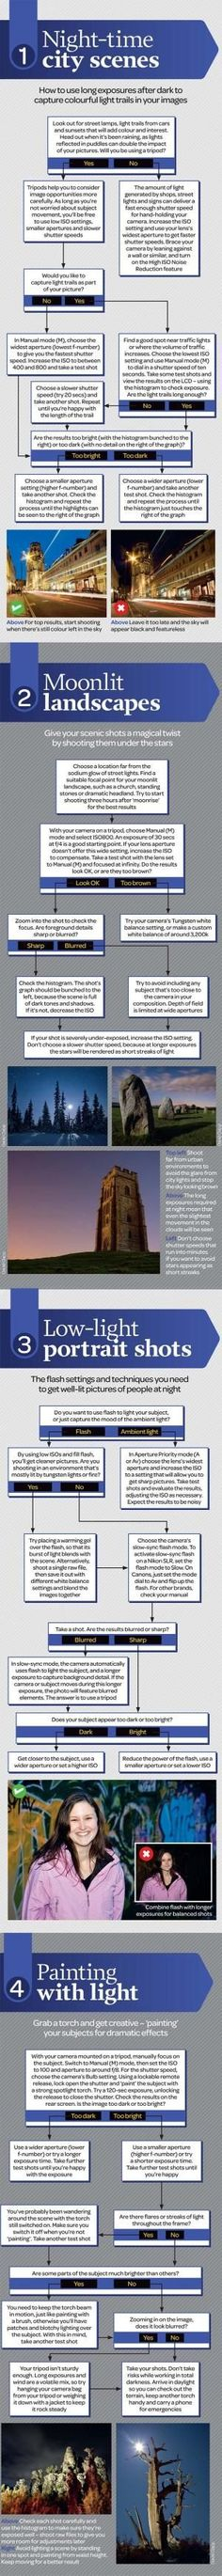 Free night photography cheat sheet: shoot any low-light scene by bleu.